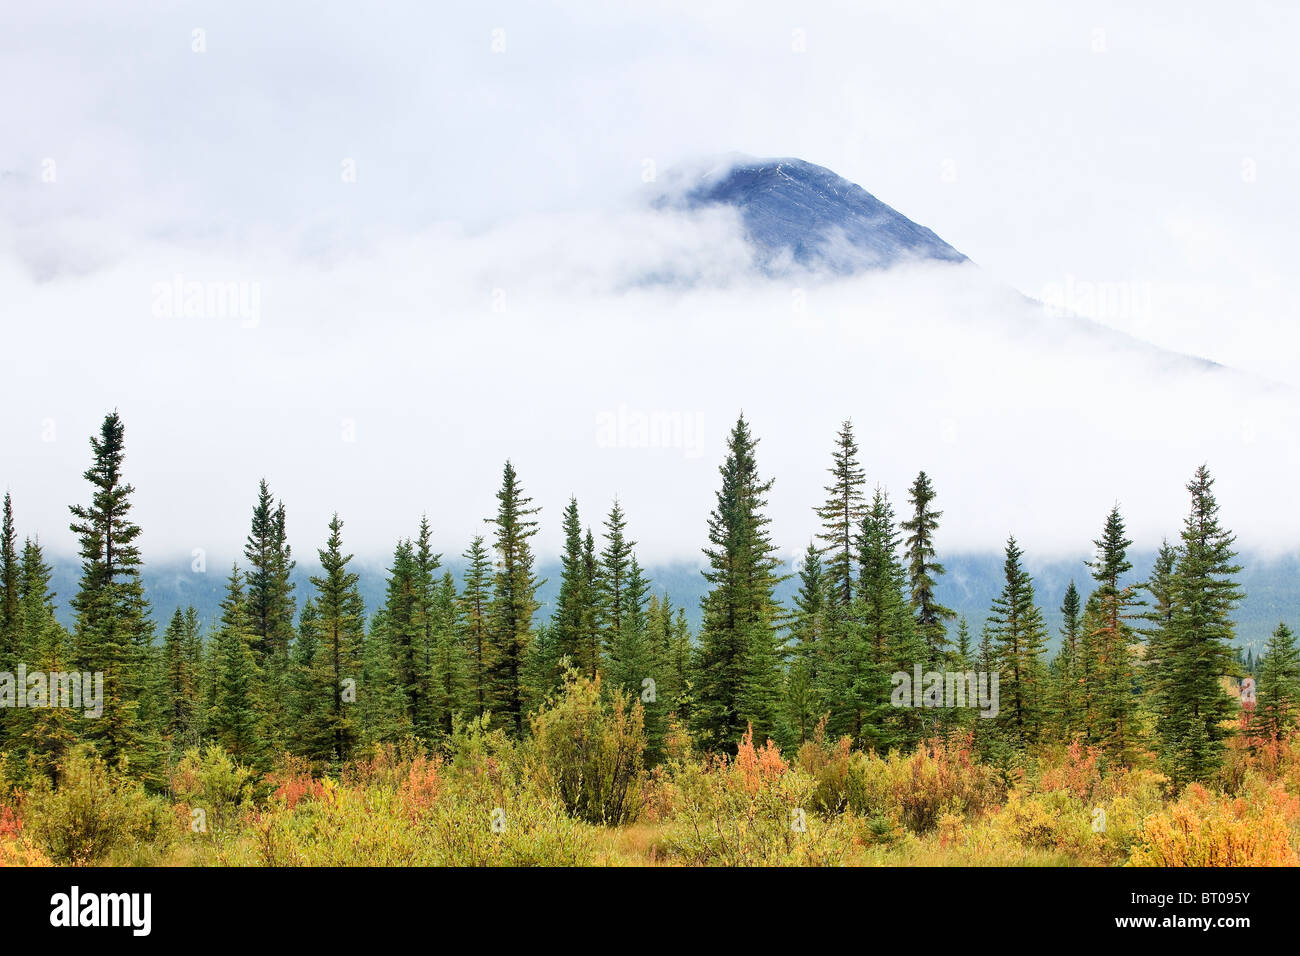 Fall colors of the Cascade Range shrouded in cloud.  Vermillion Lakes, Banff National Park, Alberta, Canada. - Stock Image